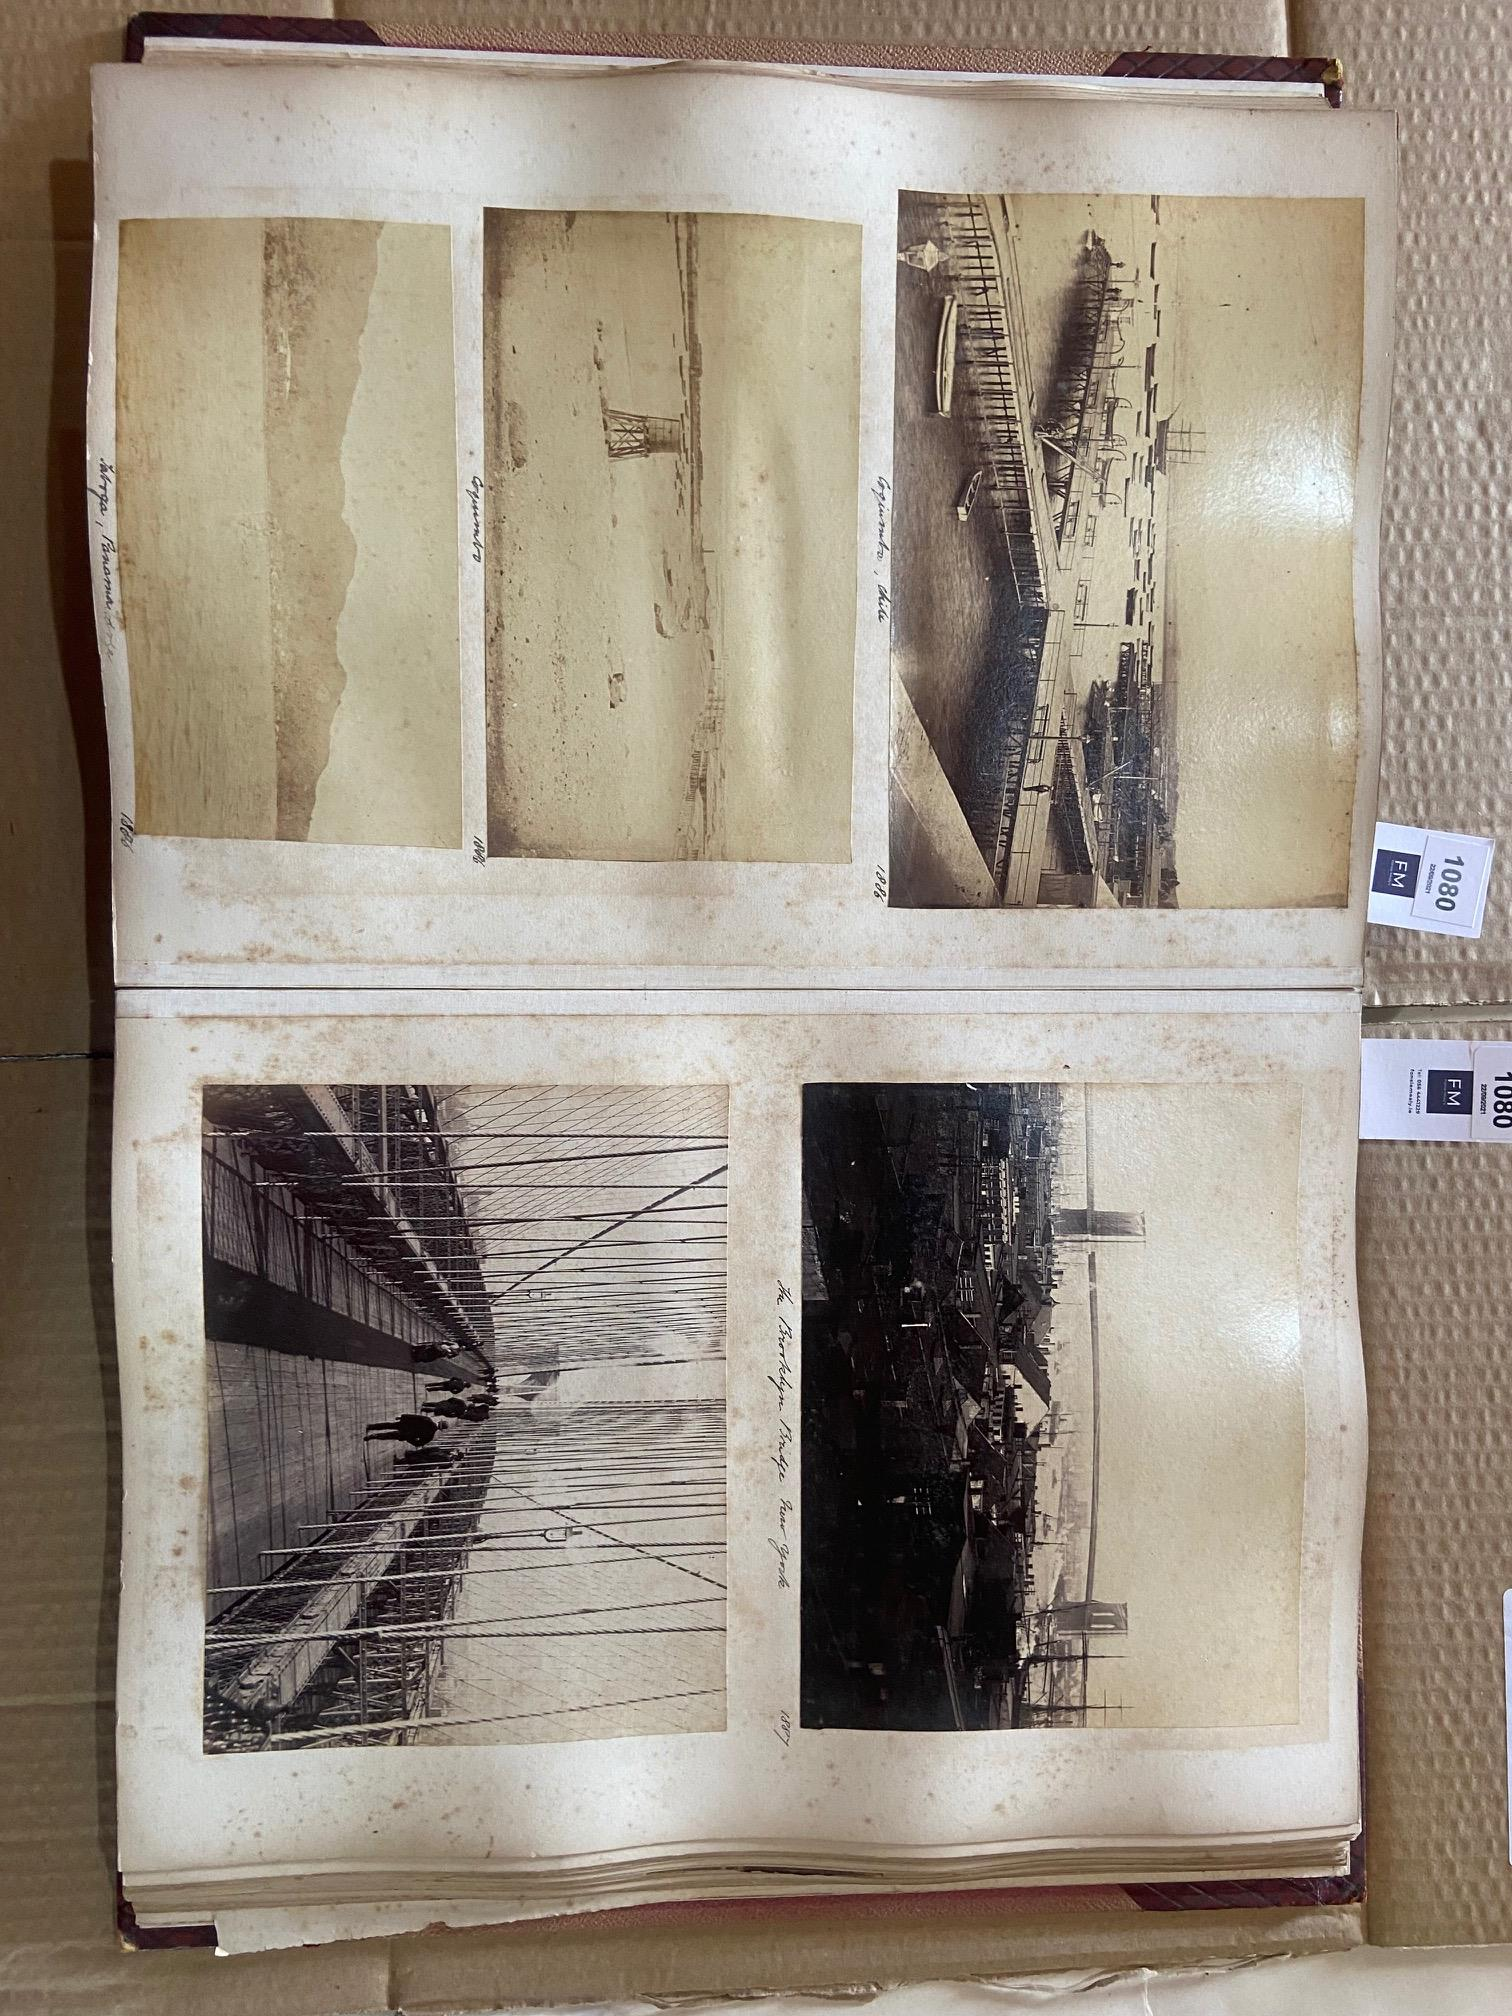 Photographs: Two large folio Albums of Photographs, each c. 1870 - 1890's. One Album contains - Image 6 of 31